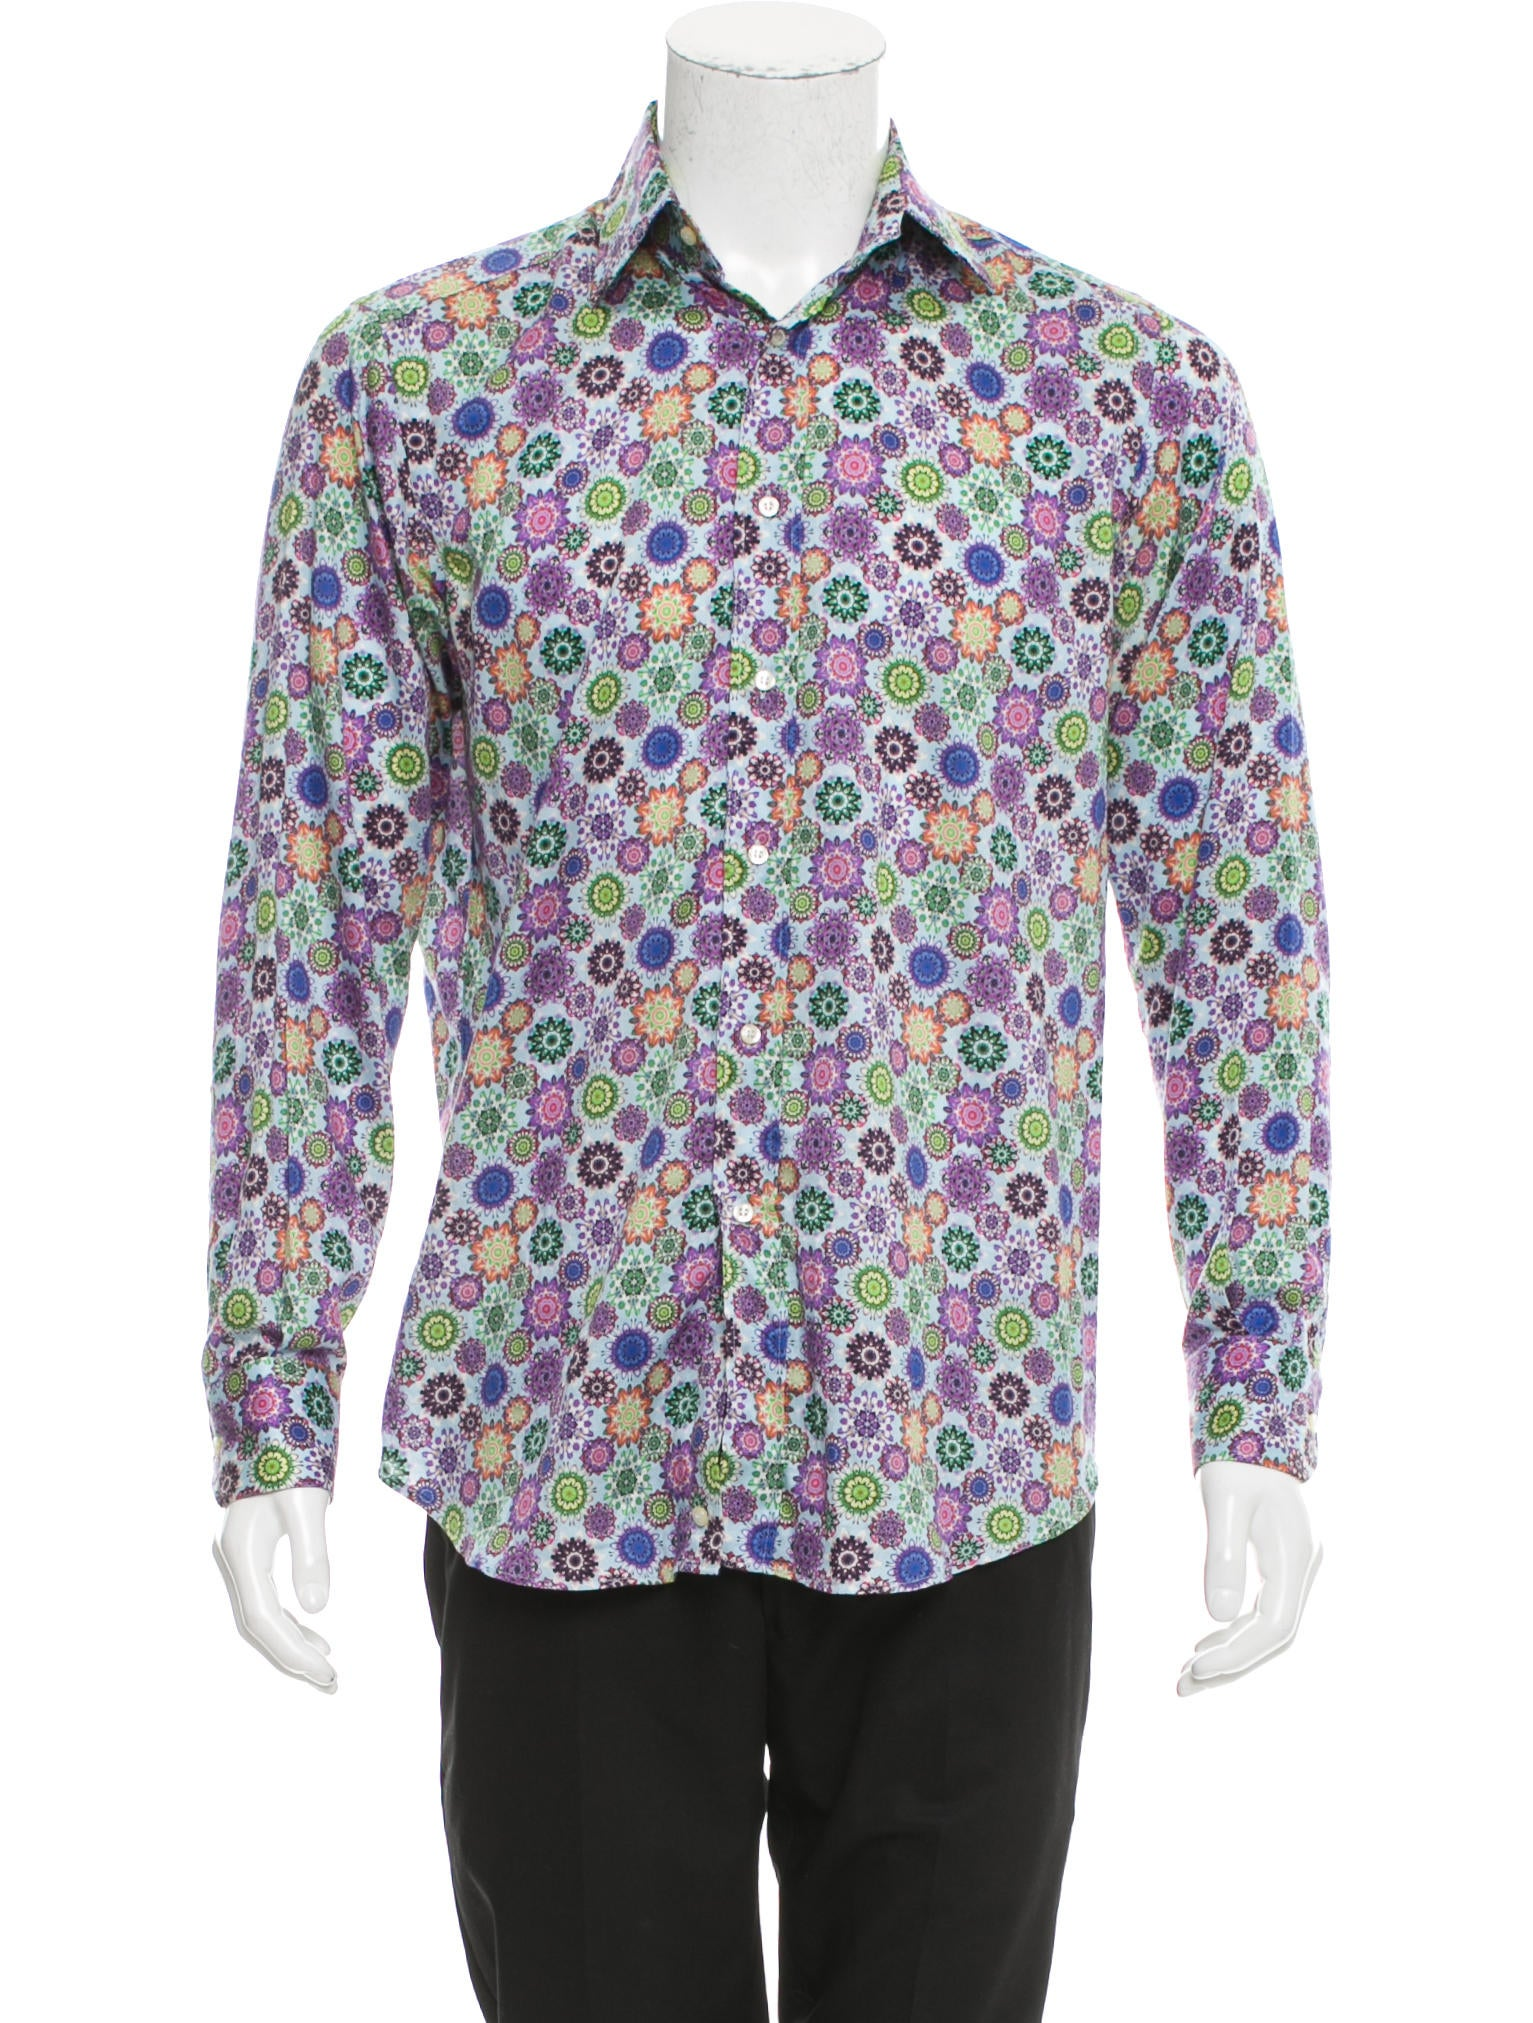 Etro floral print button up shirt clothing etr48106 for Floral print button up shirt